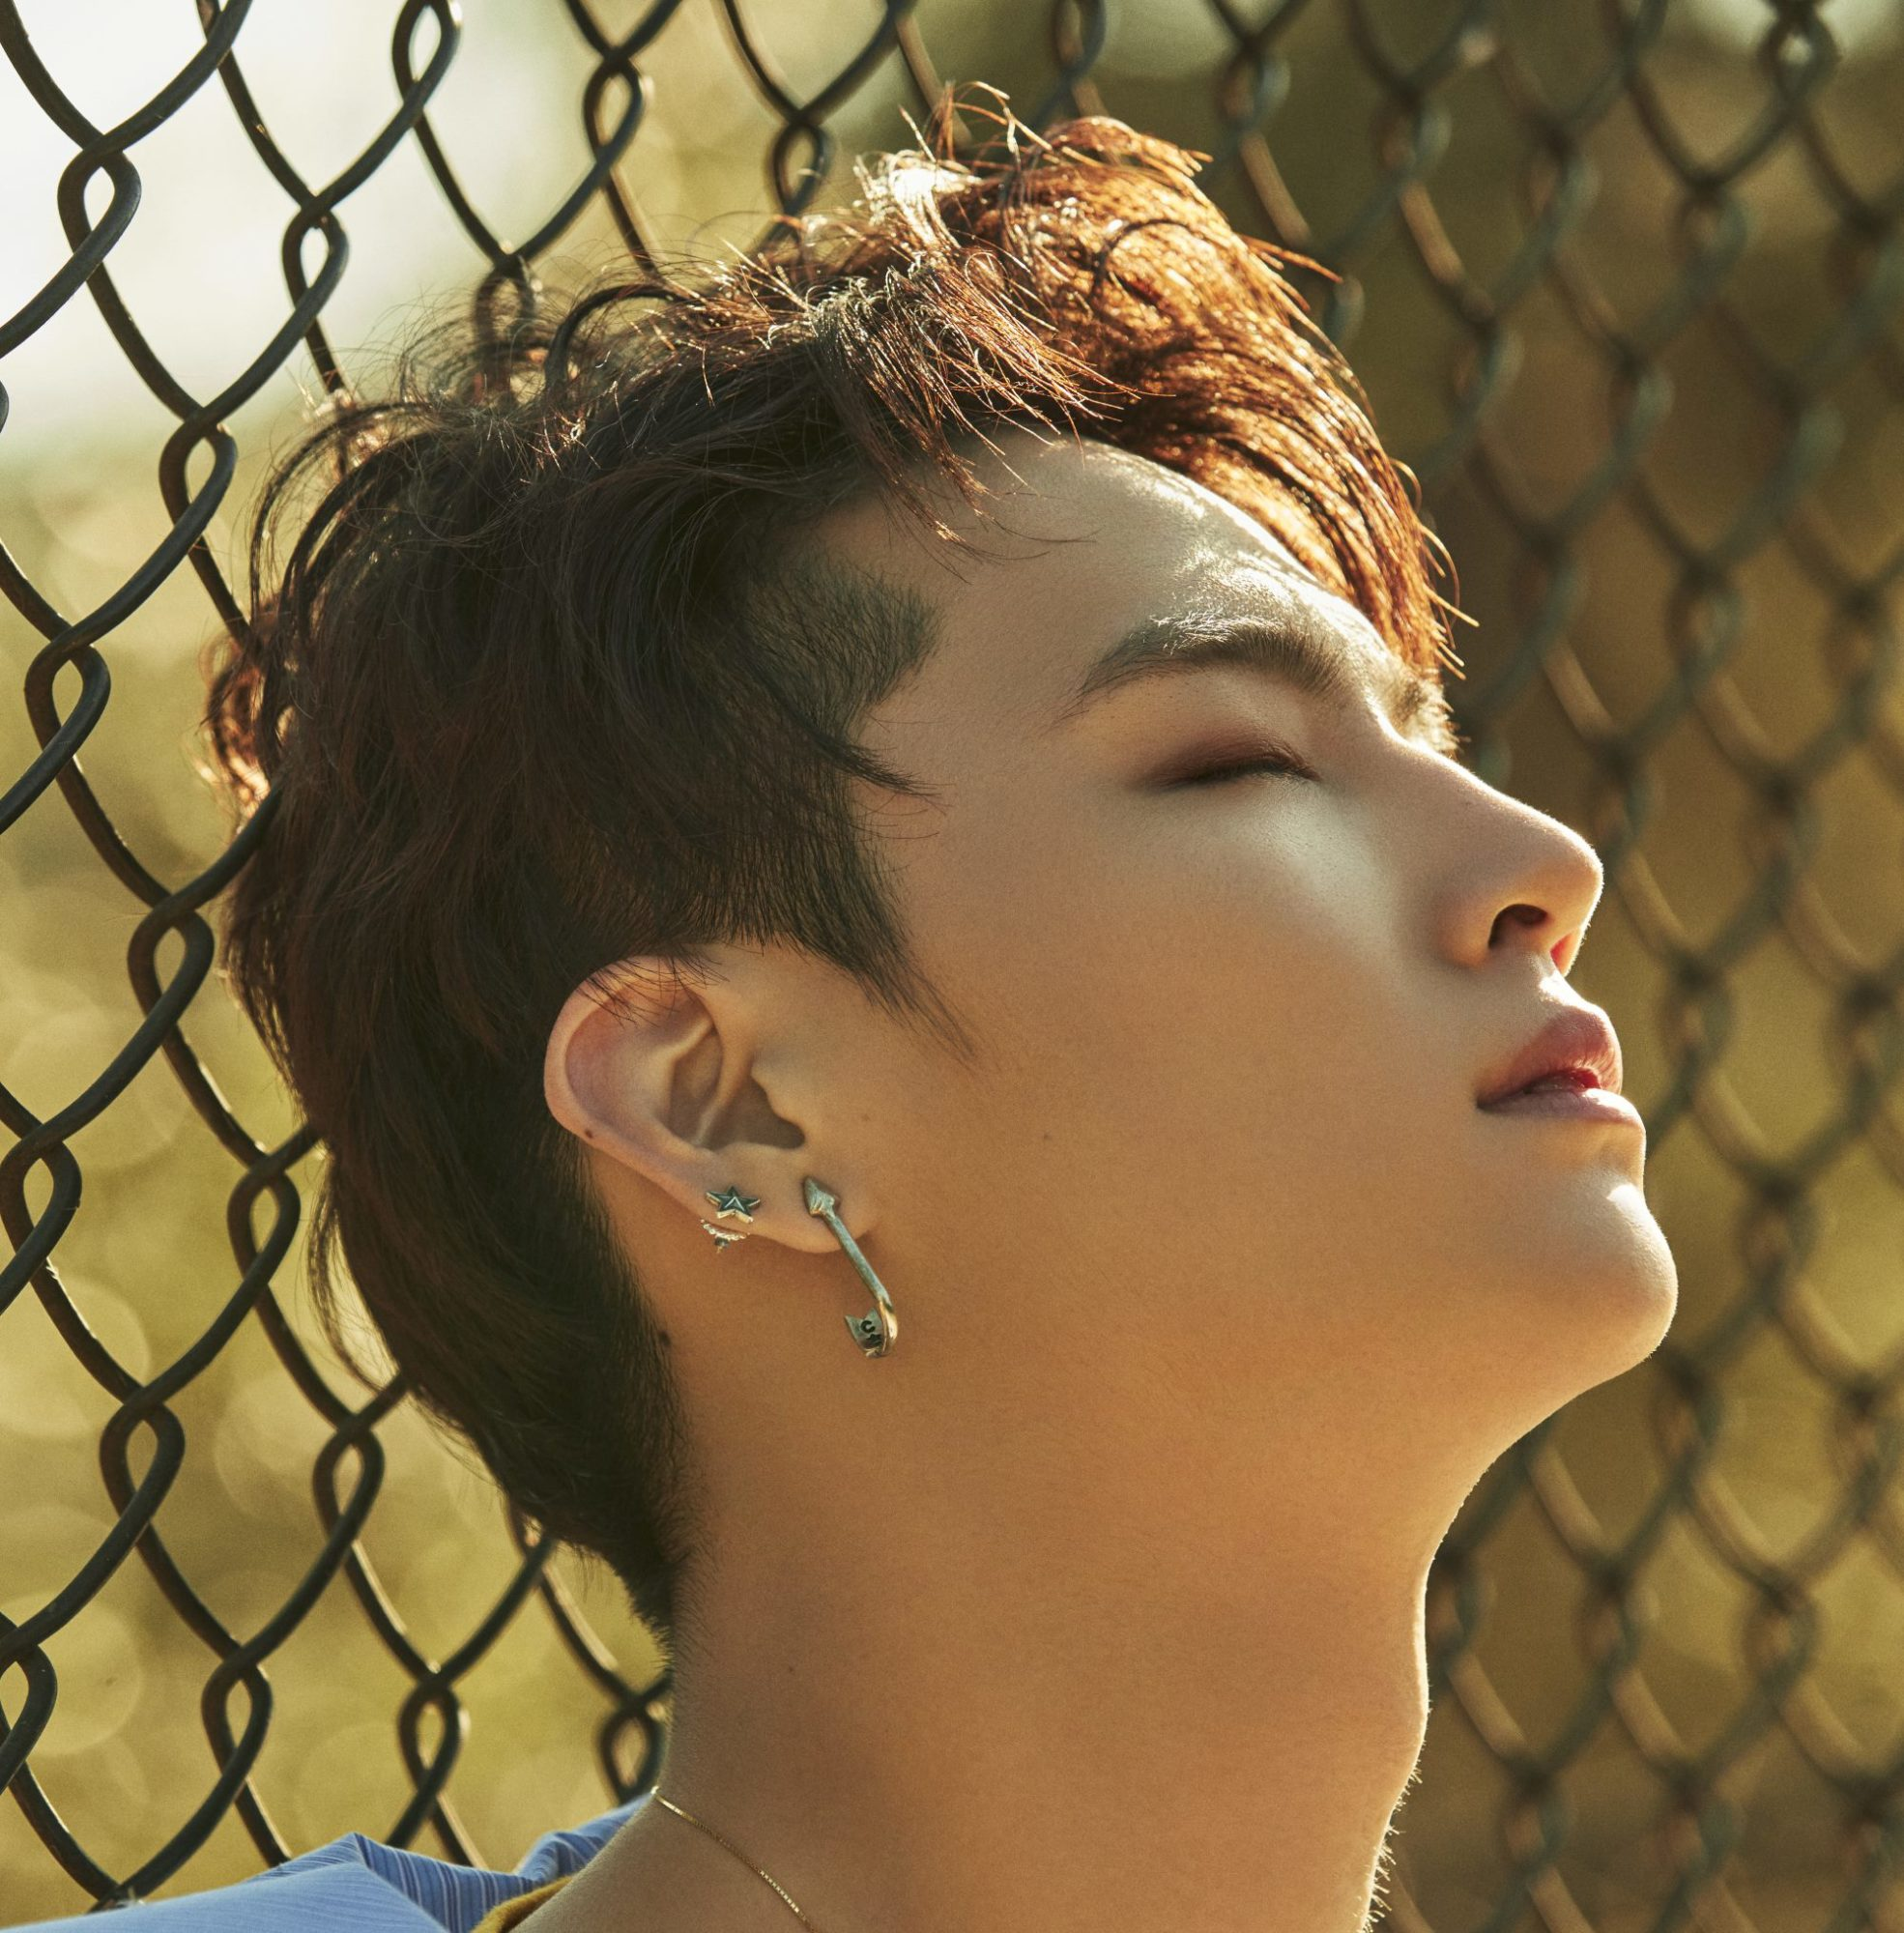 GOT7 JB profile